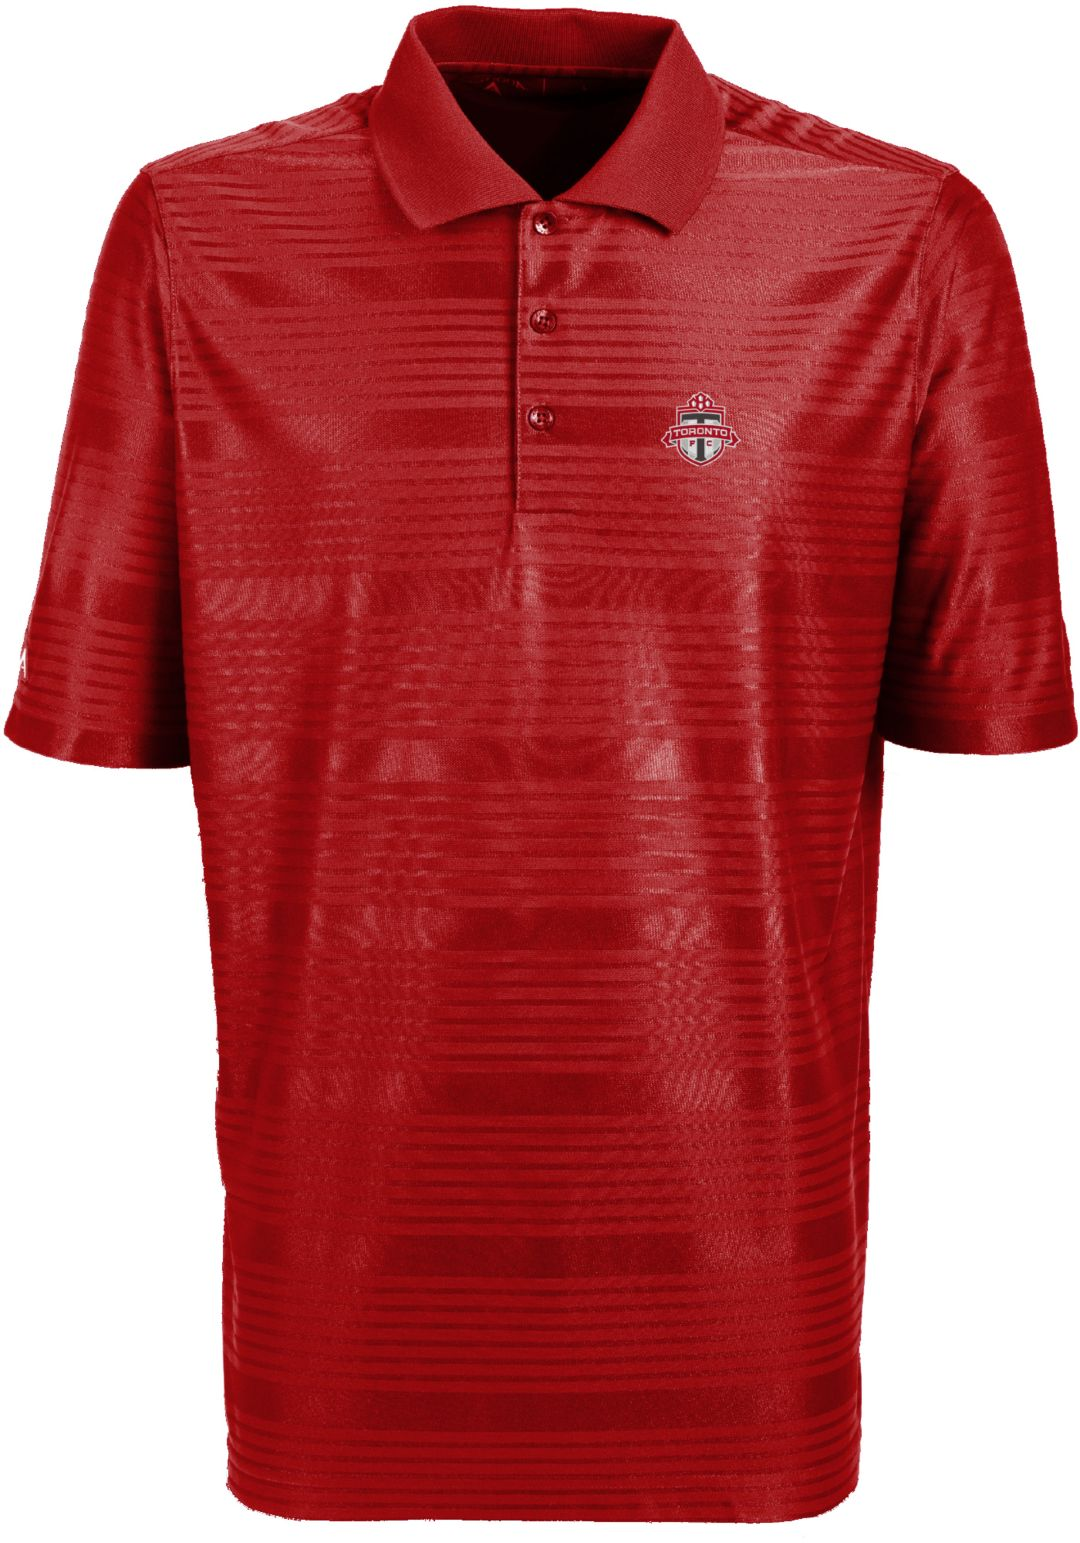 factory authentic f8509 29498 Antigua Men's Toronto FC Illusion Red Performance Polo